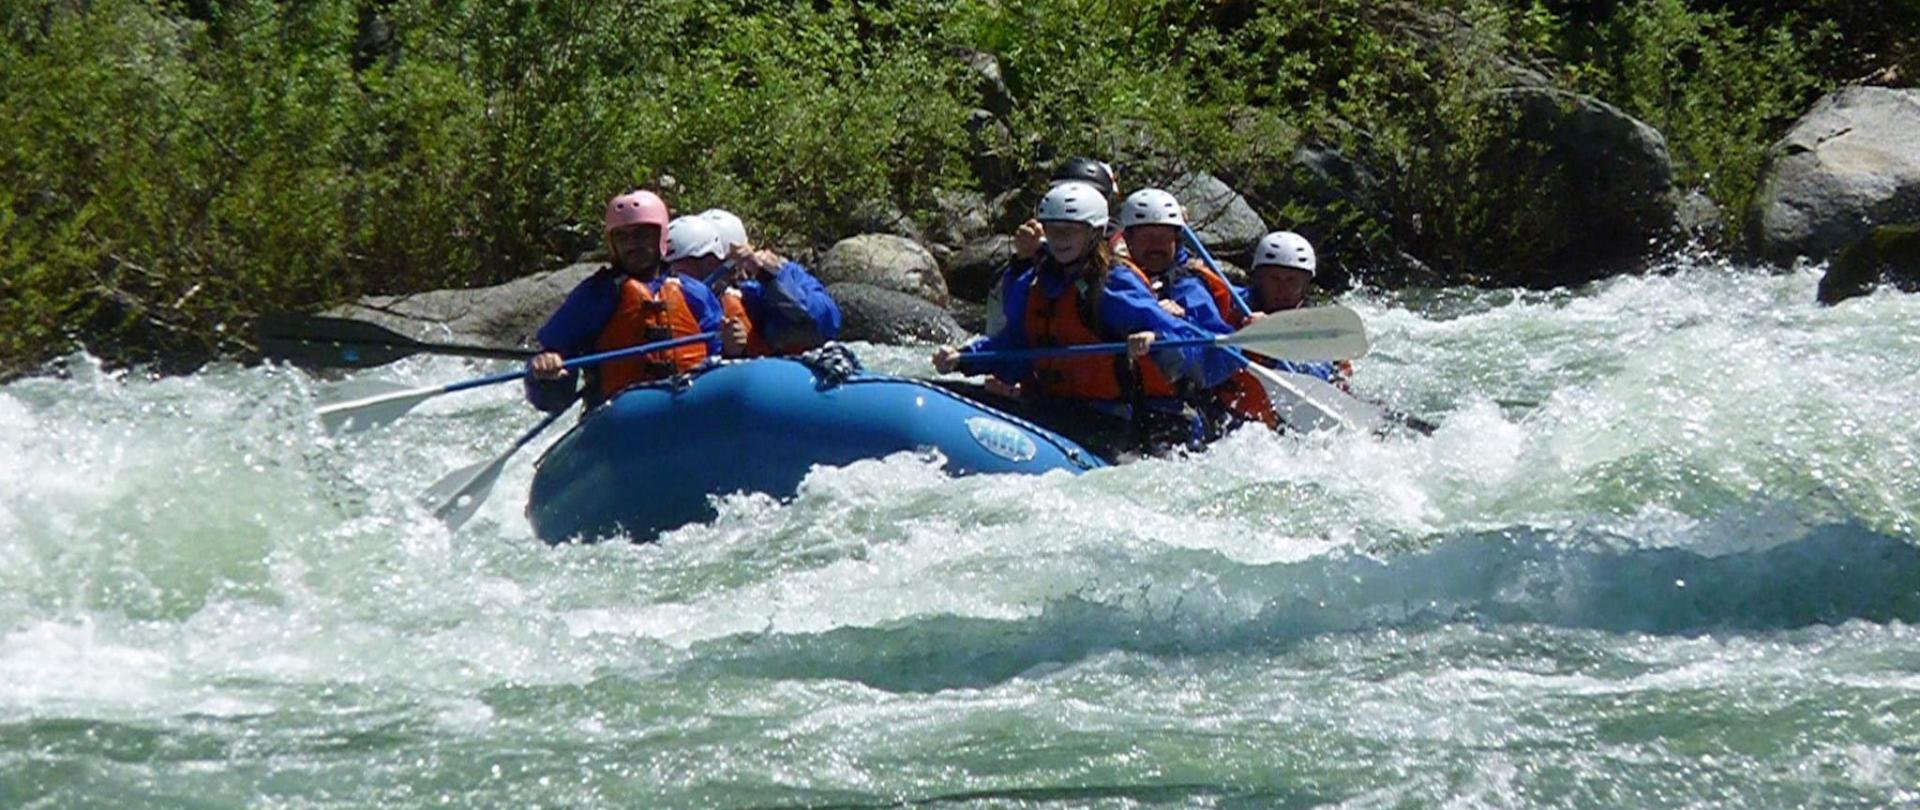 whitewater rafting 1920x1176.jpeg